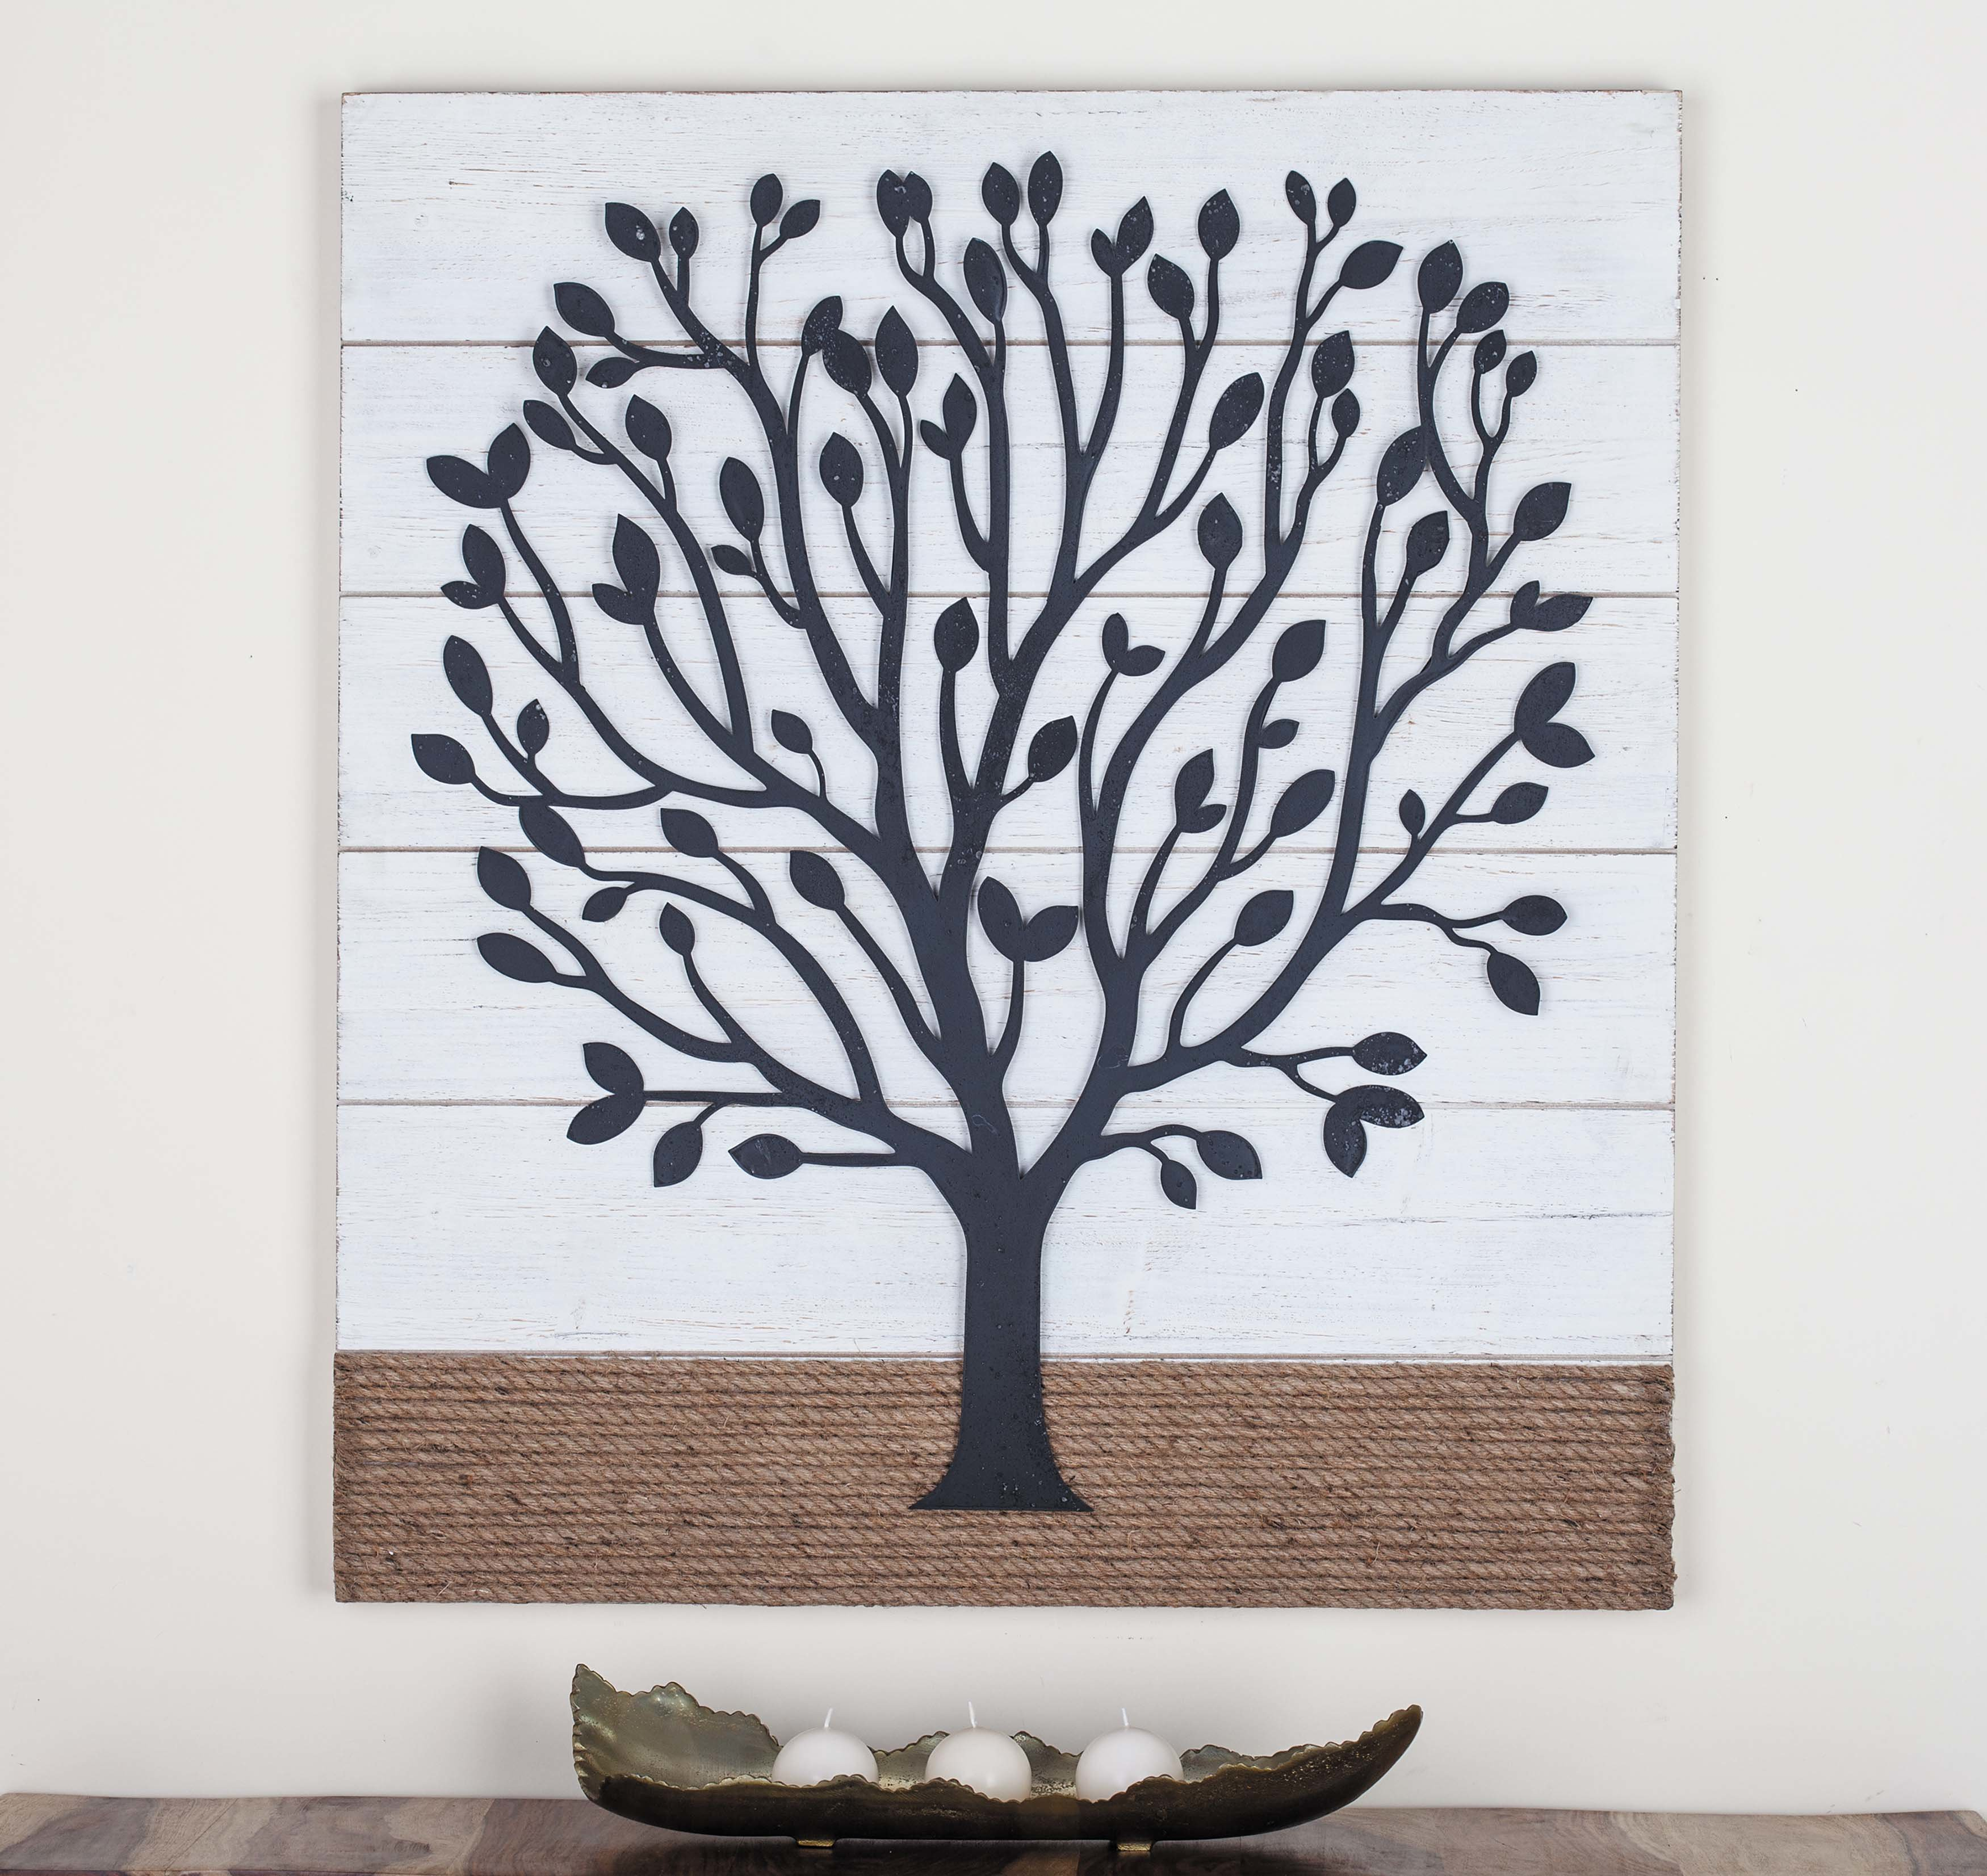 Wood/metal Rope Wall Décor Pertaining To Metal Rope Wall Sign Wall Decor (View 30 of 30)